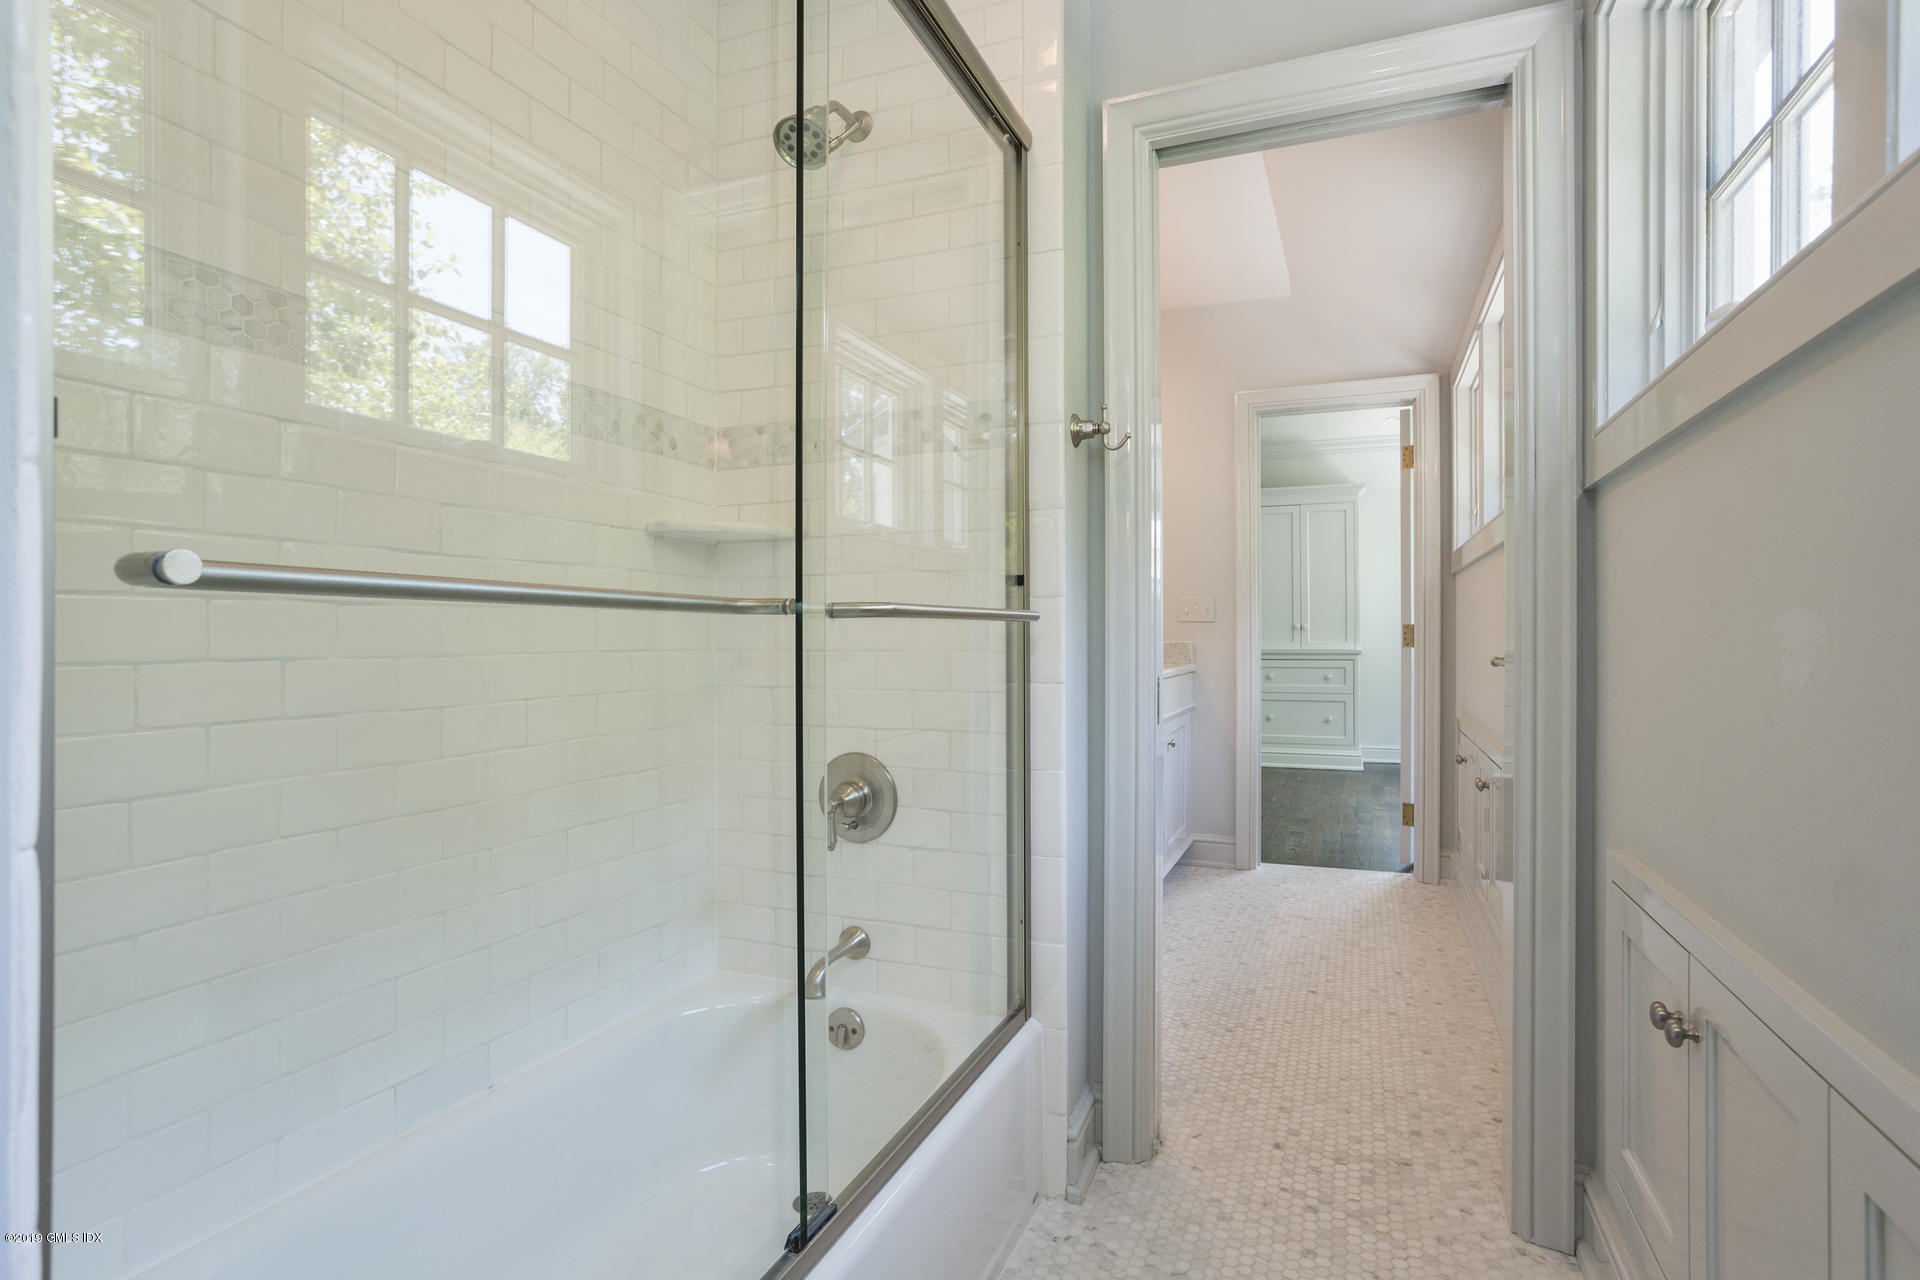 64 Old Church Road,Greenwich,Connecticut 06830,5 Bedrooms Bedrooms,4 BathroomsBathrooms,Single family,Old Church,107268